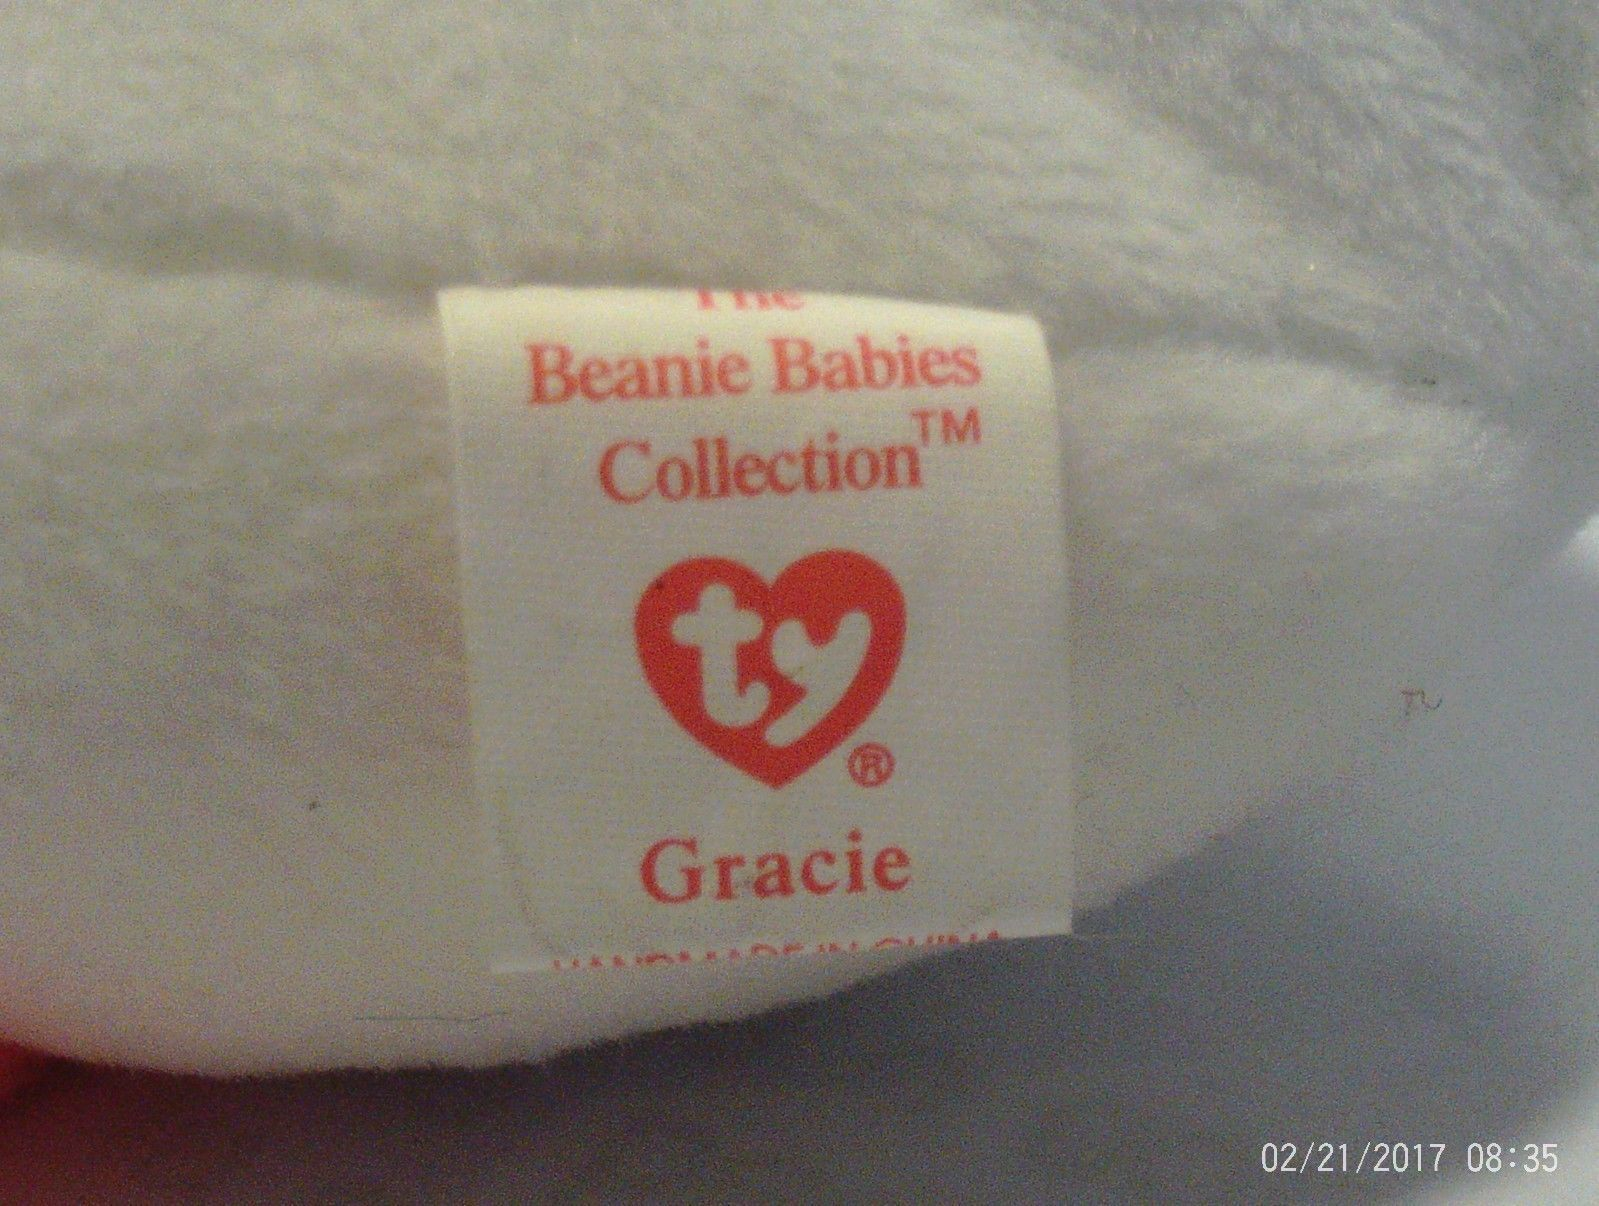 1st Edition Beanie Babies Rare Gracie the Swan No star, no stamp, PVC